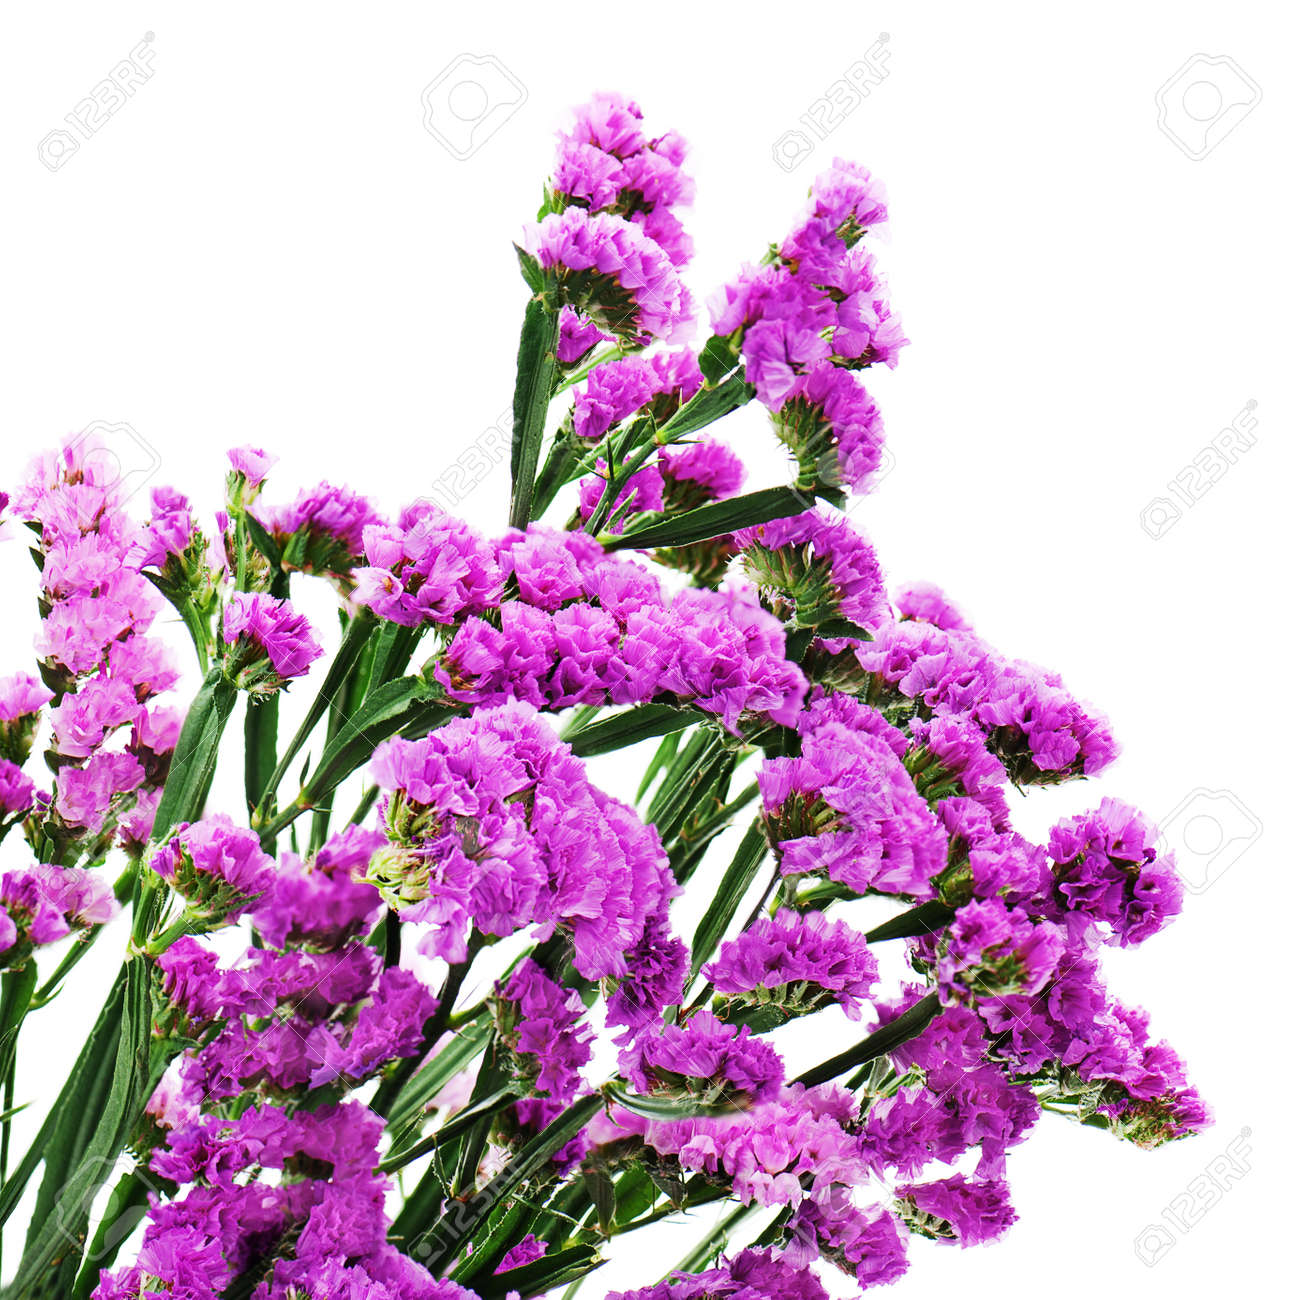 bouquet from purple statice flowers isolated on white background